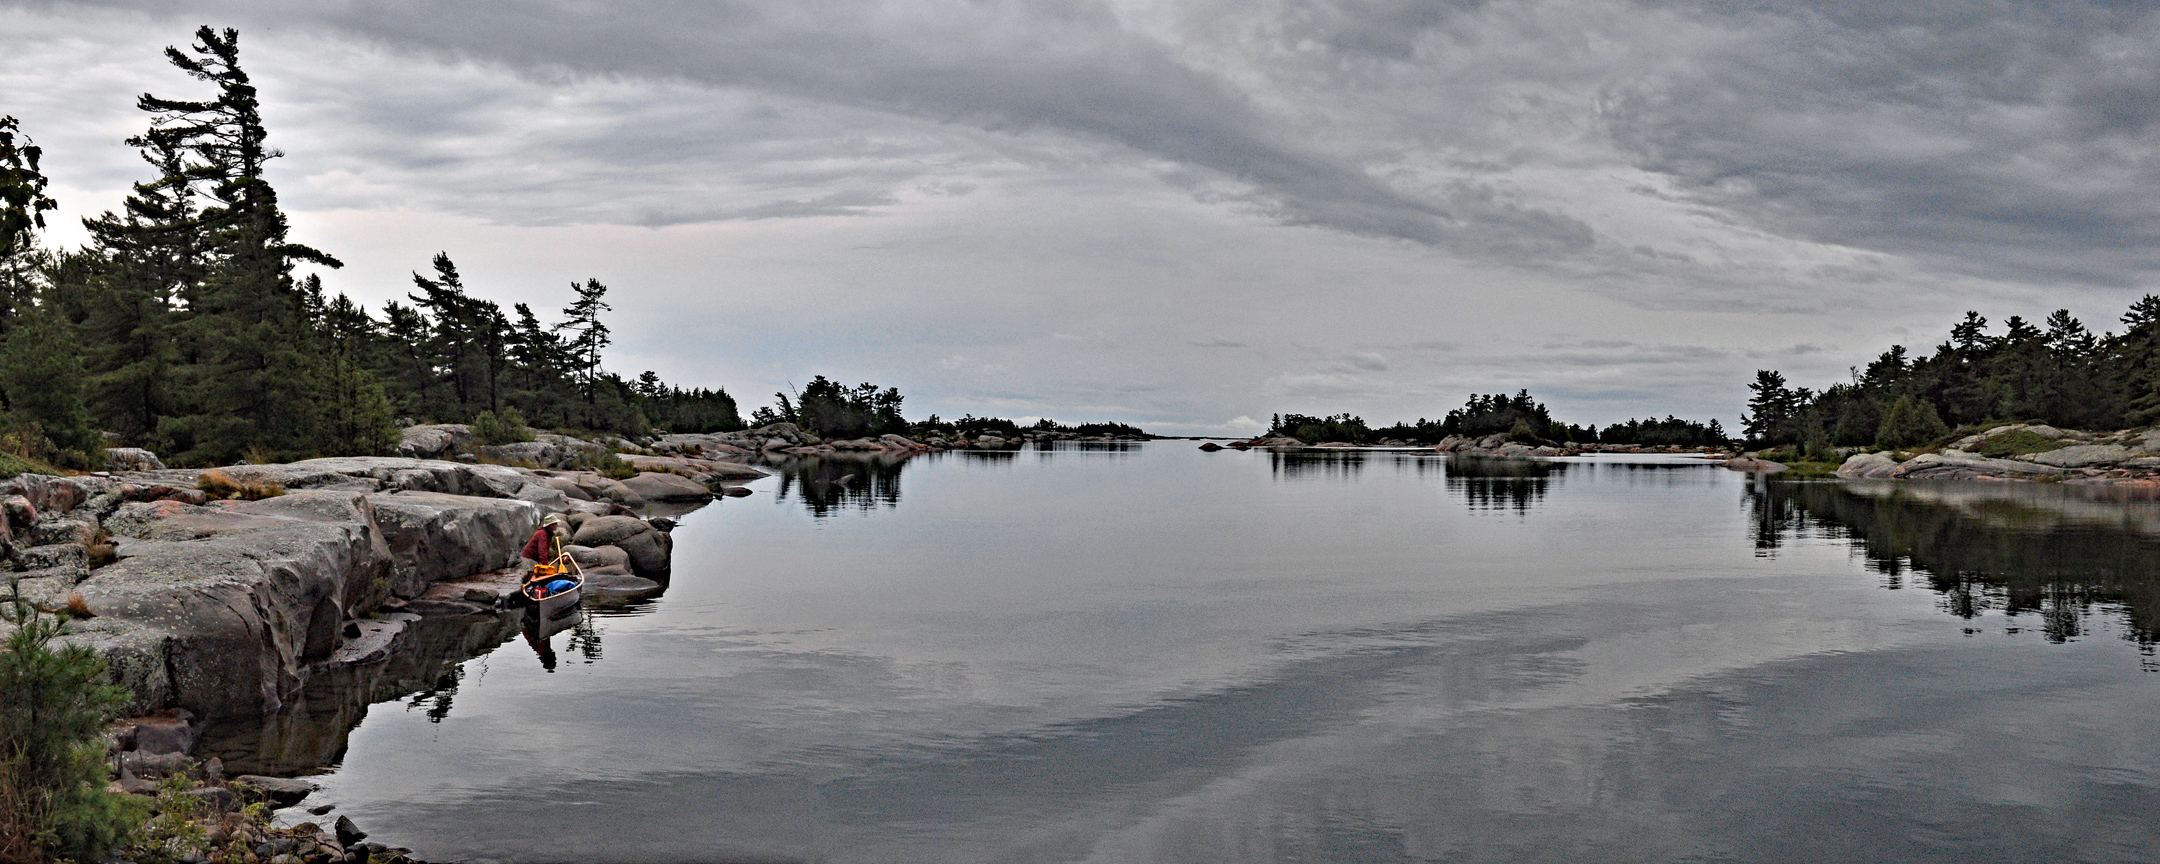 Panorama, grey sky, canoeist setting out